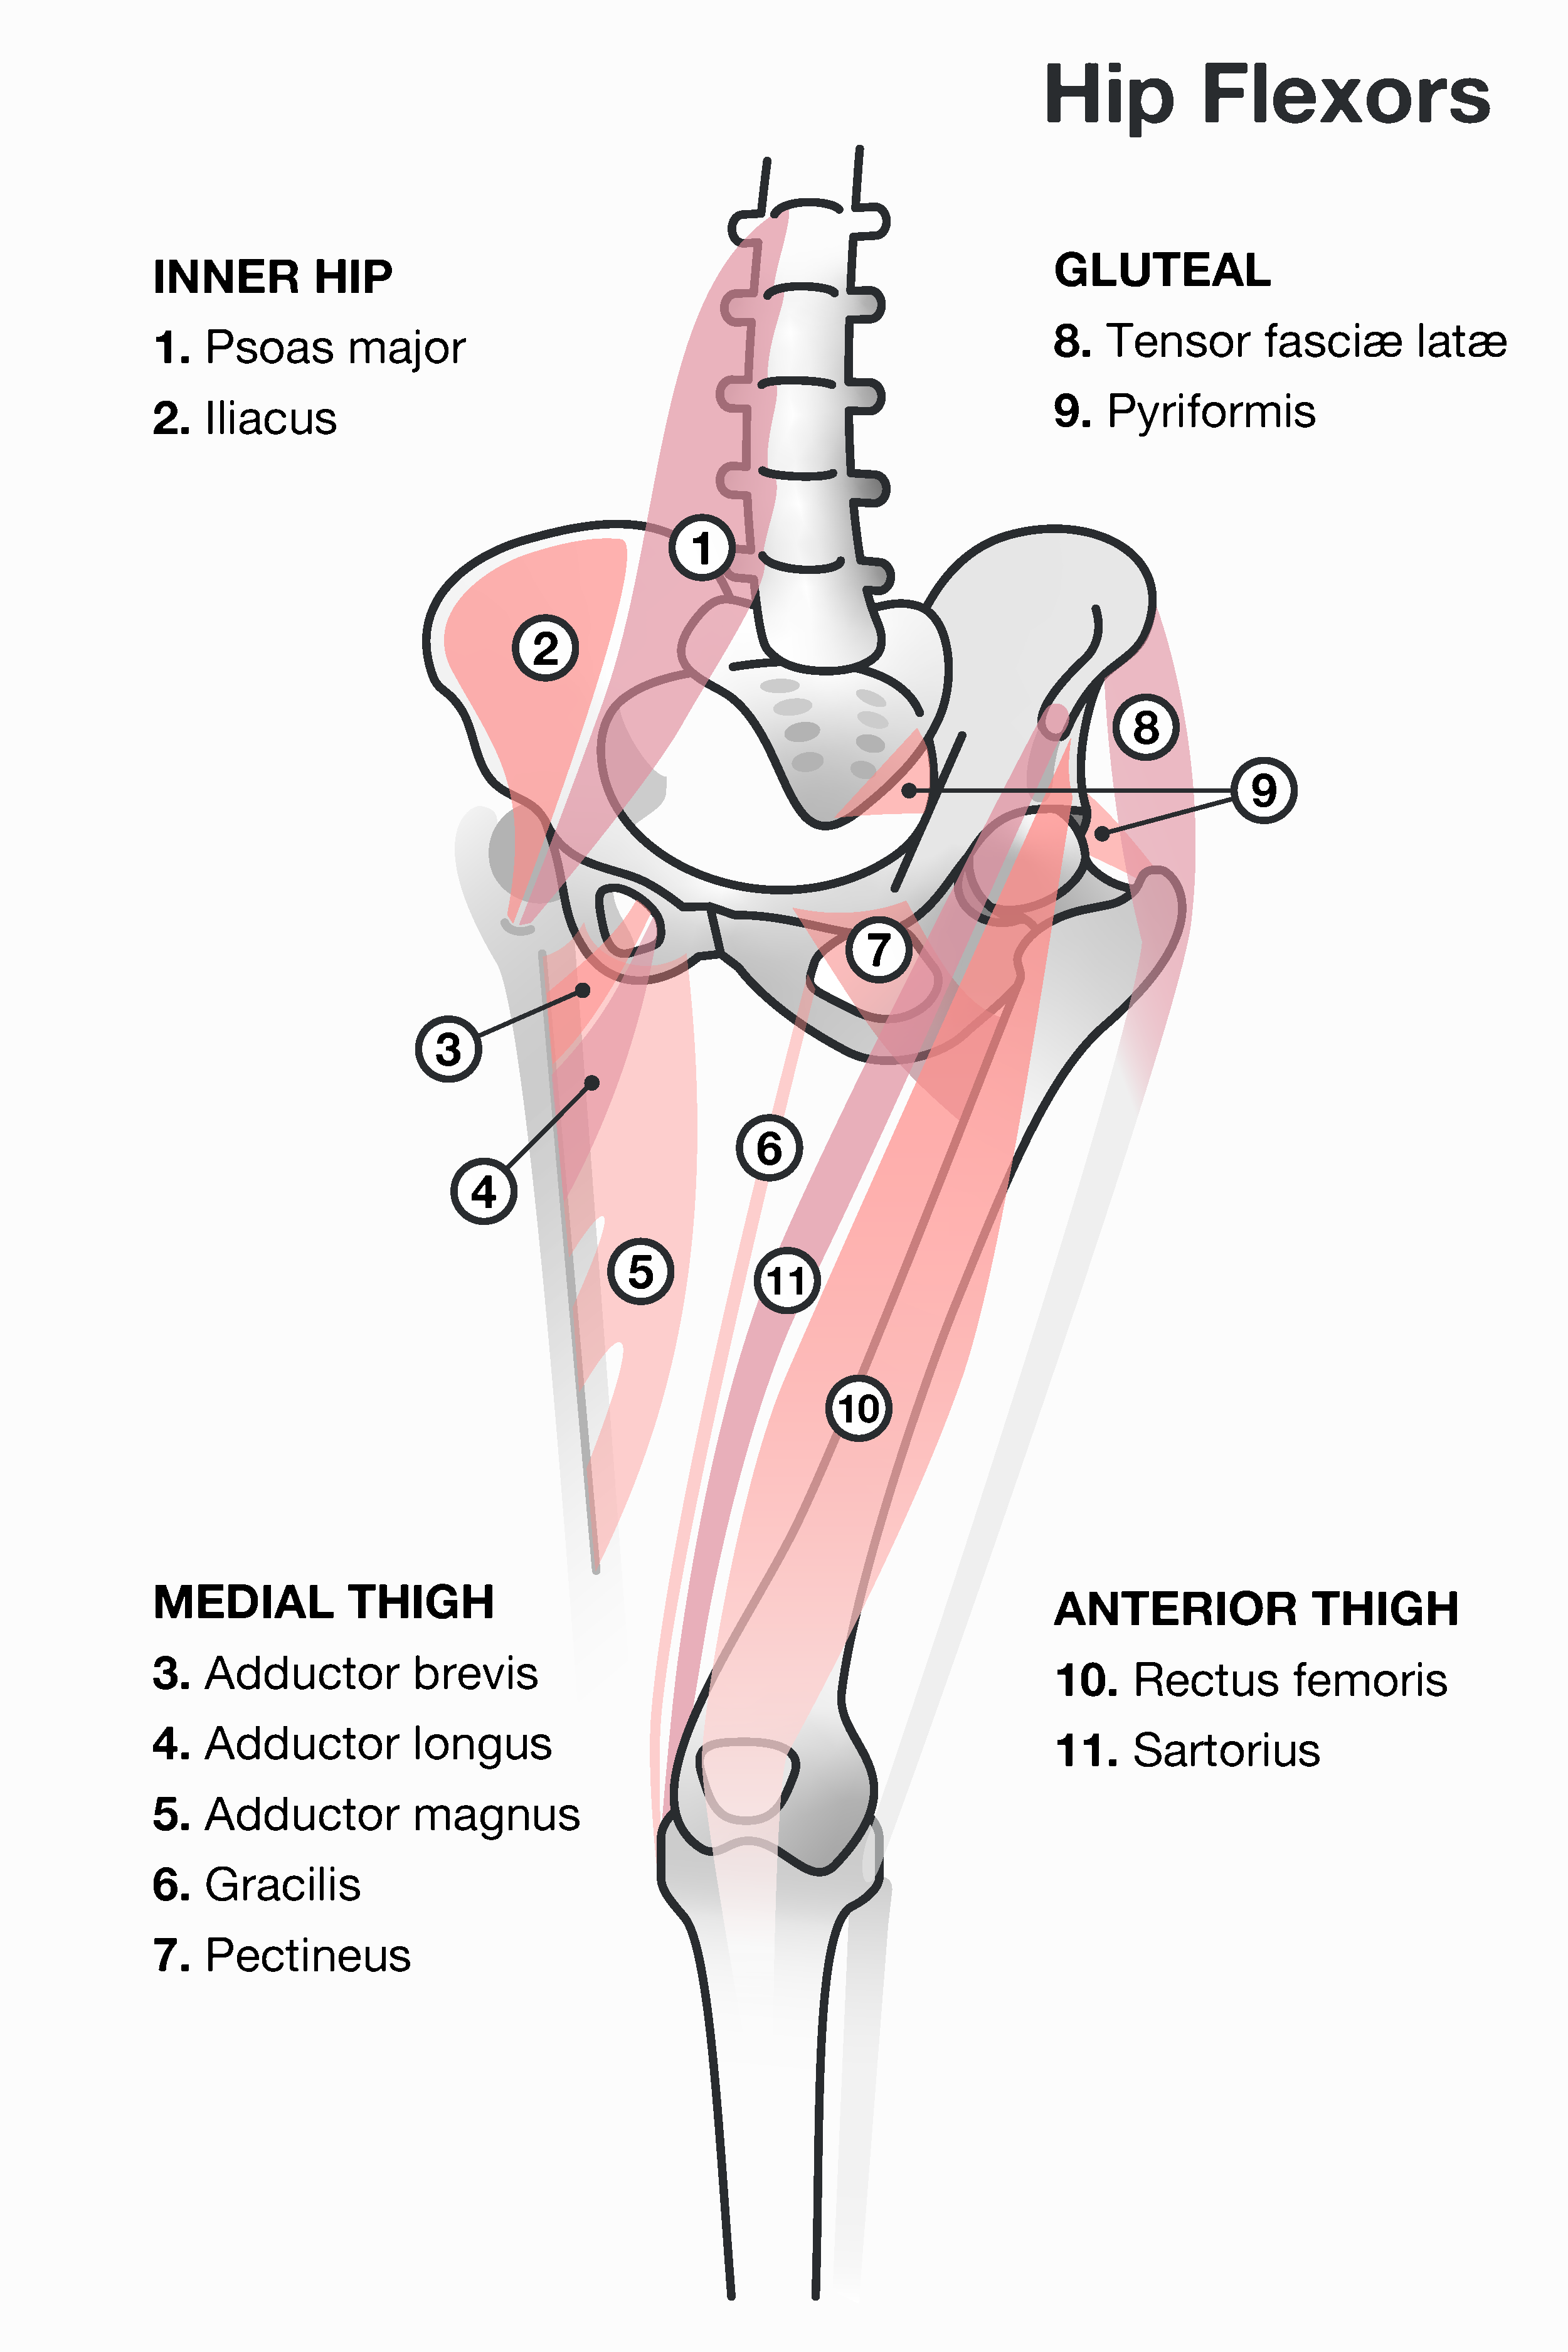 Anatomy Illustrations for the 8fit app